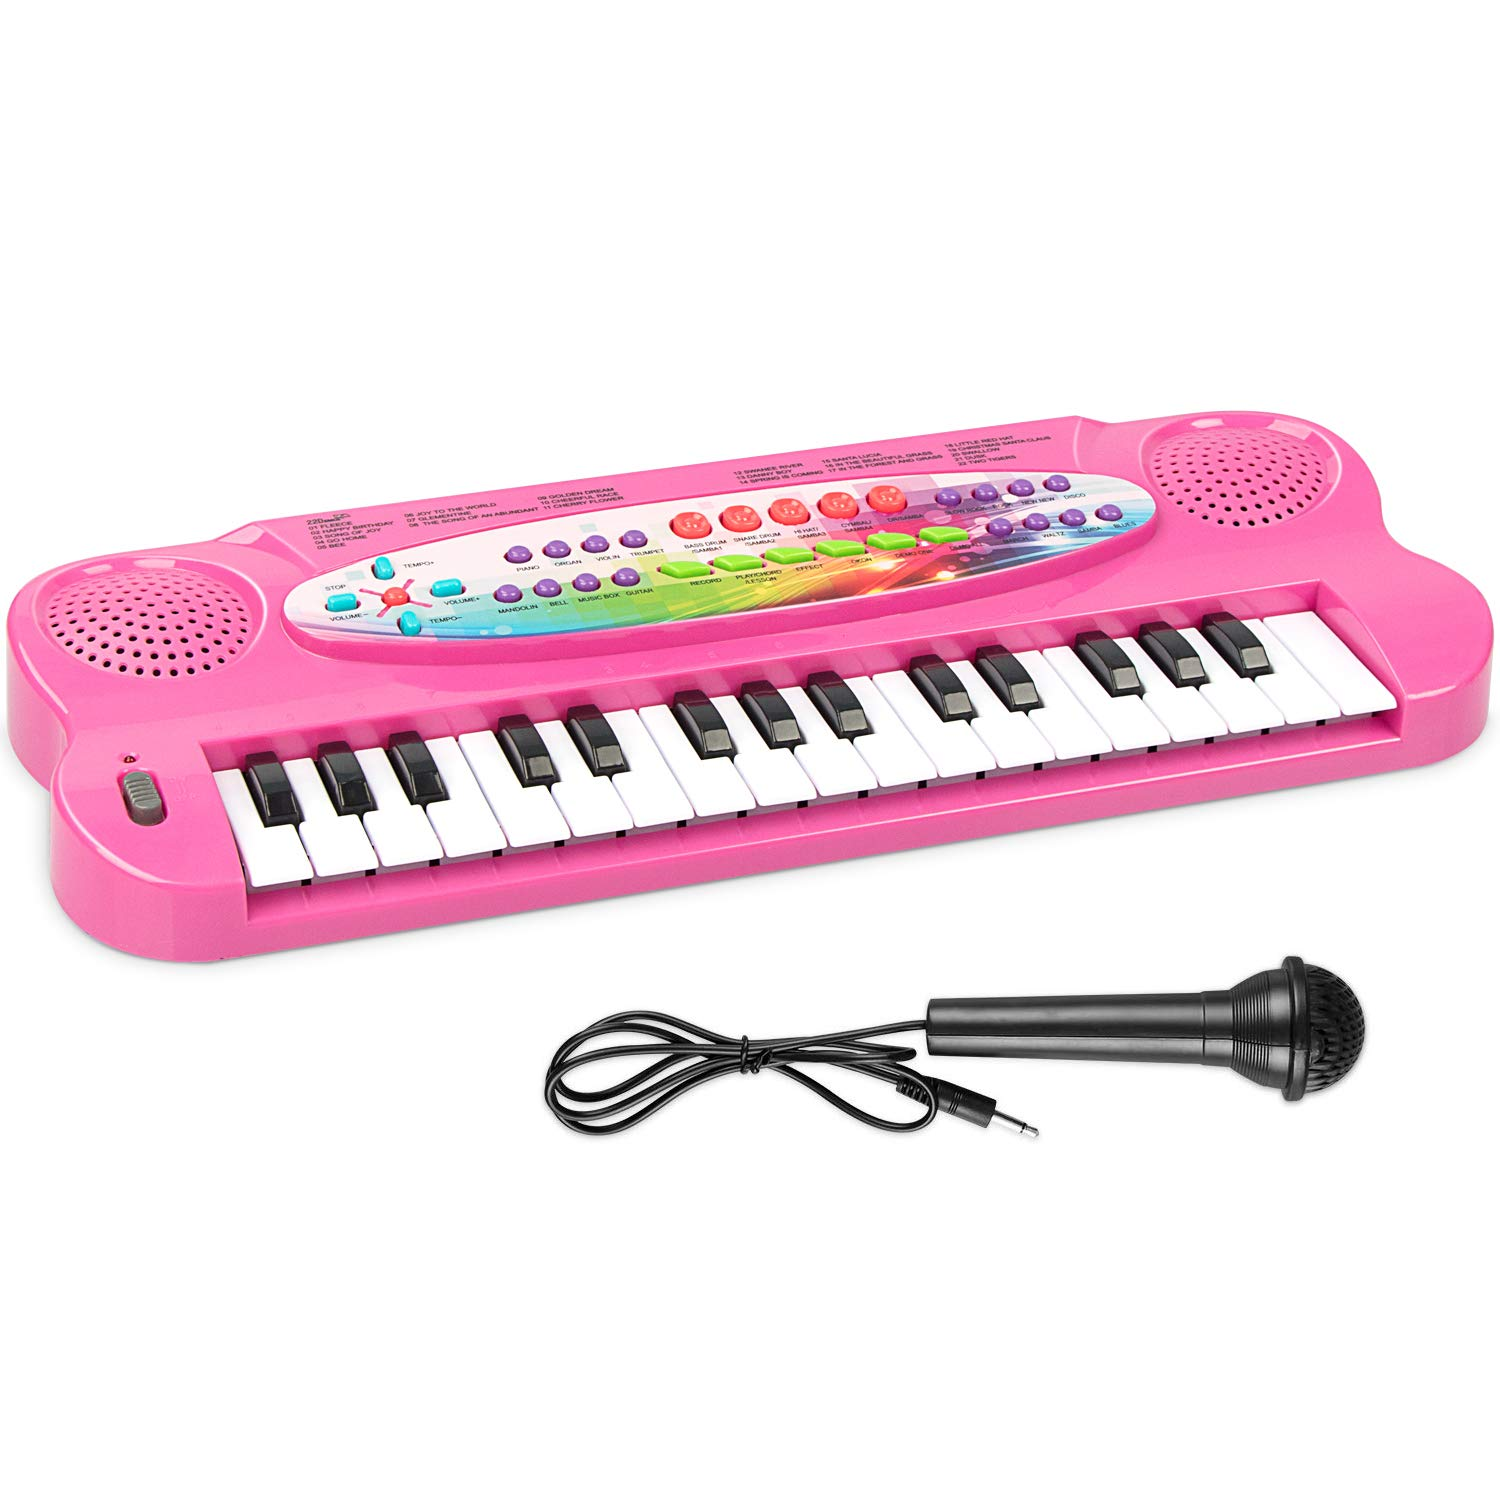 AIMEDYOU Kids Piano Keyboard 32 Keys Portable Electronic Musical Instrument Multi-Function Keyboard Teaching Toys Birthday Christmas Day Gifts for Kids (Pink)